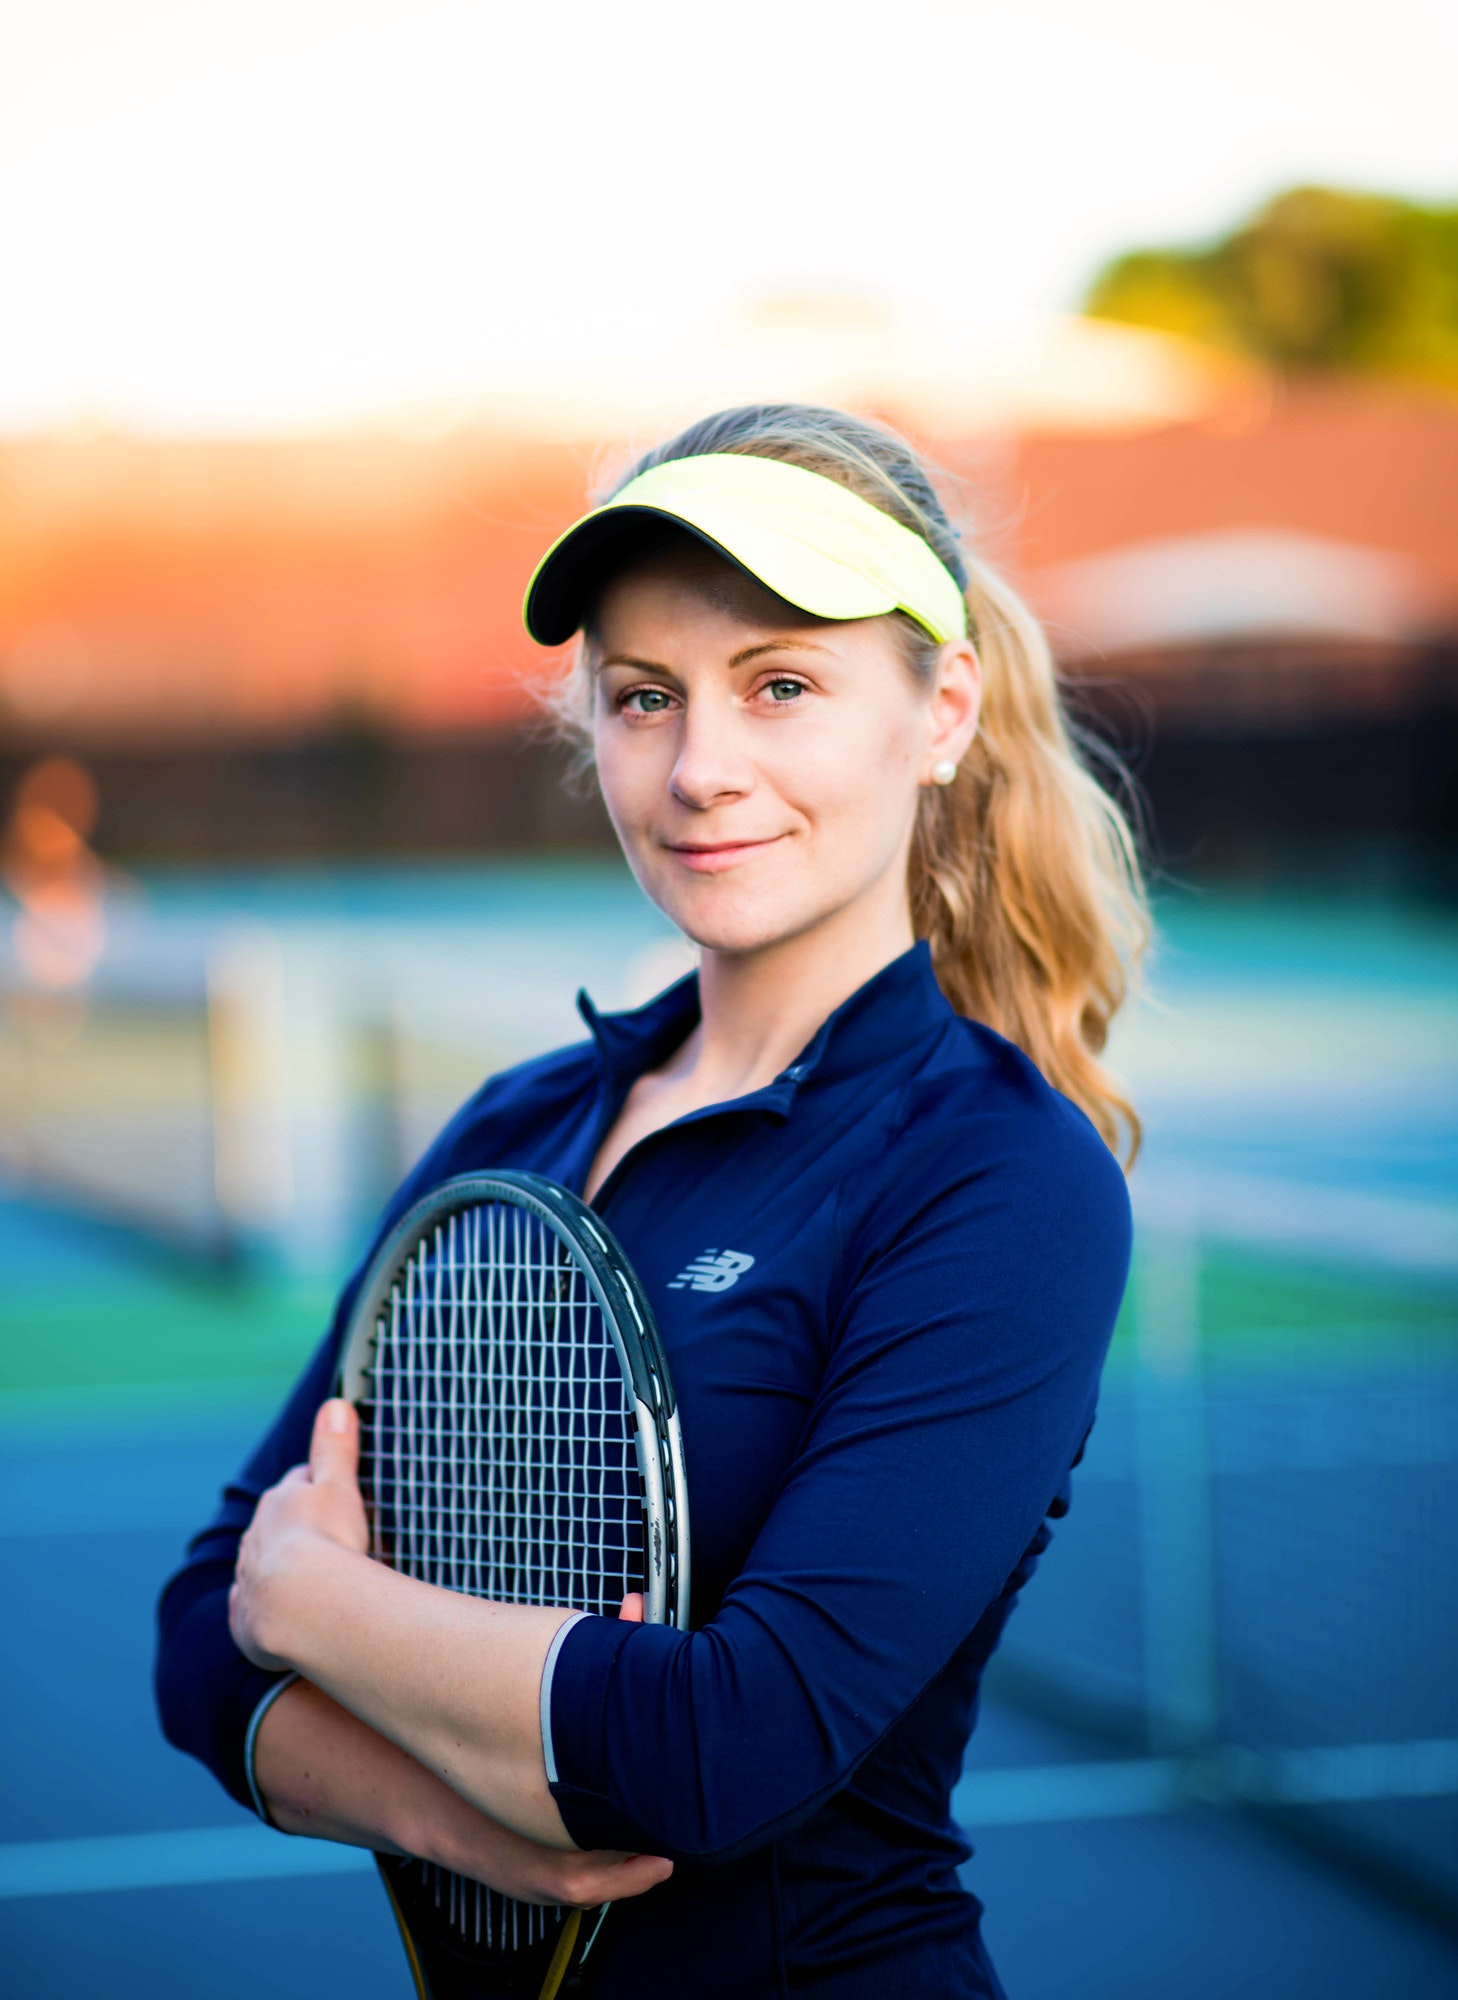 Elena L. teaches tennis lessons in Raleigh, NC